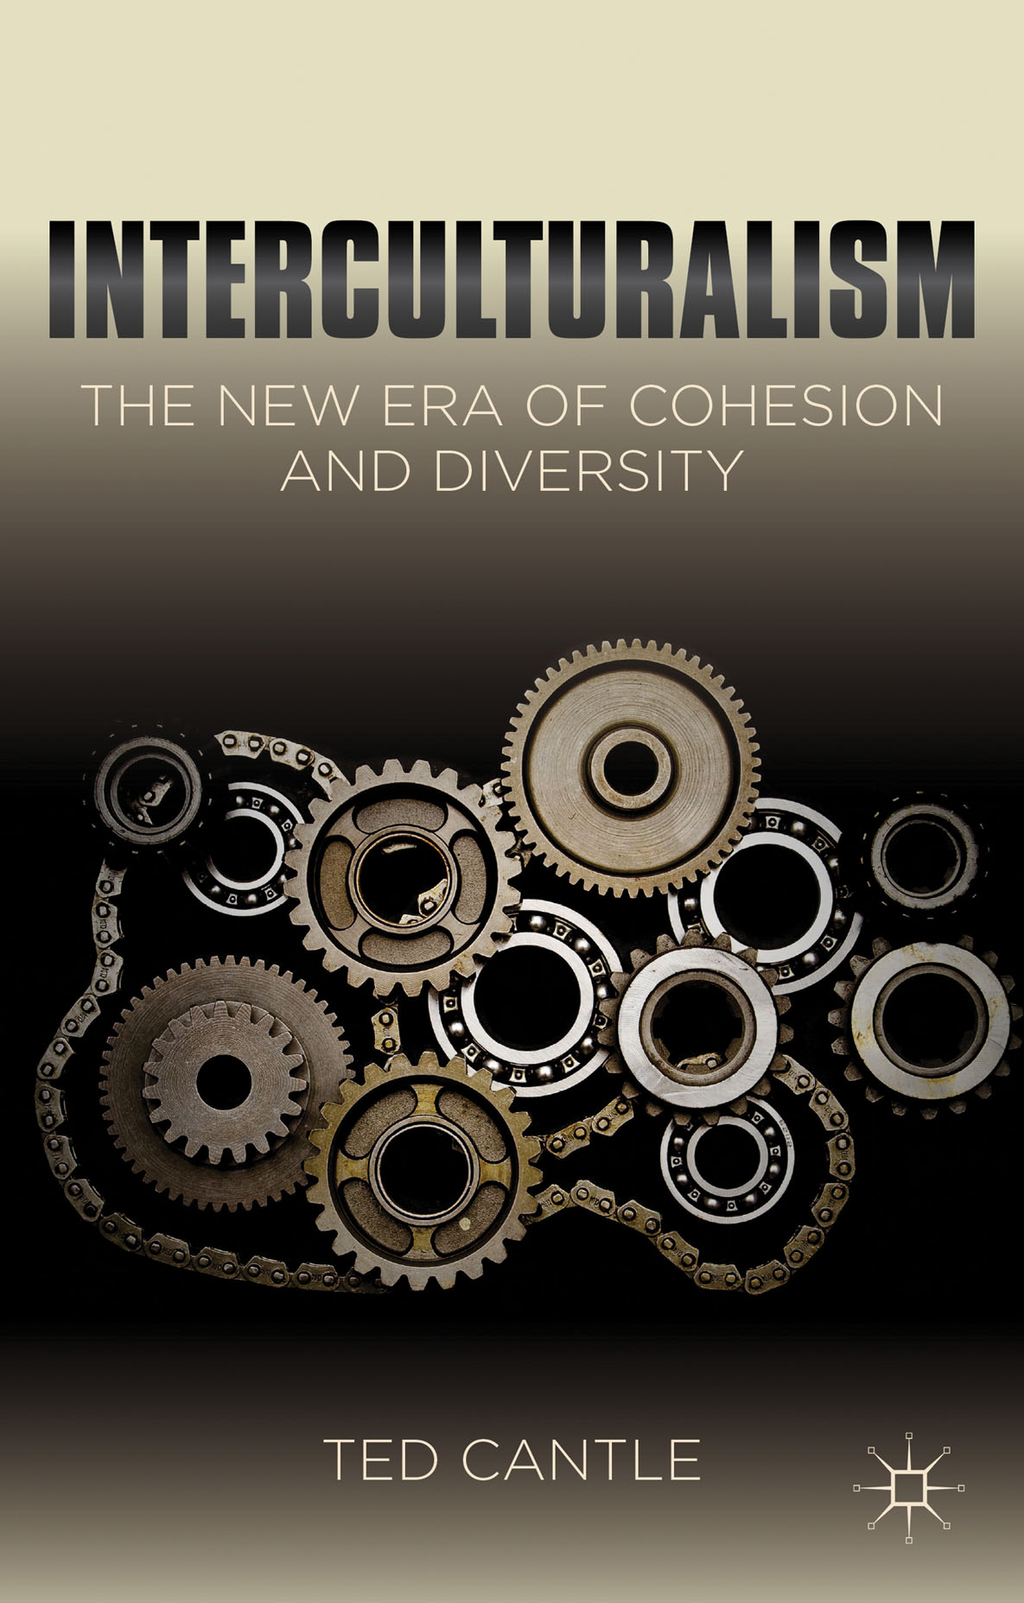 Interculturalism: The New Era of Cohesion and Diversity